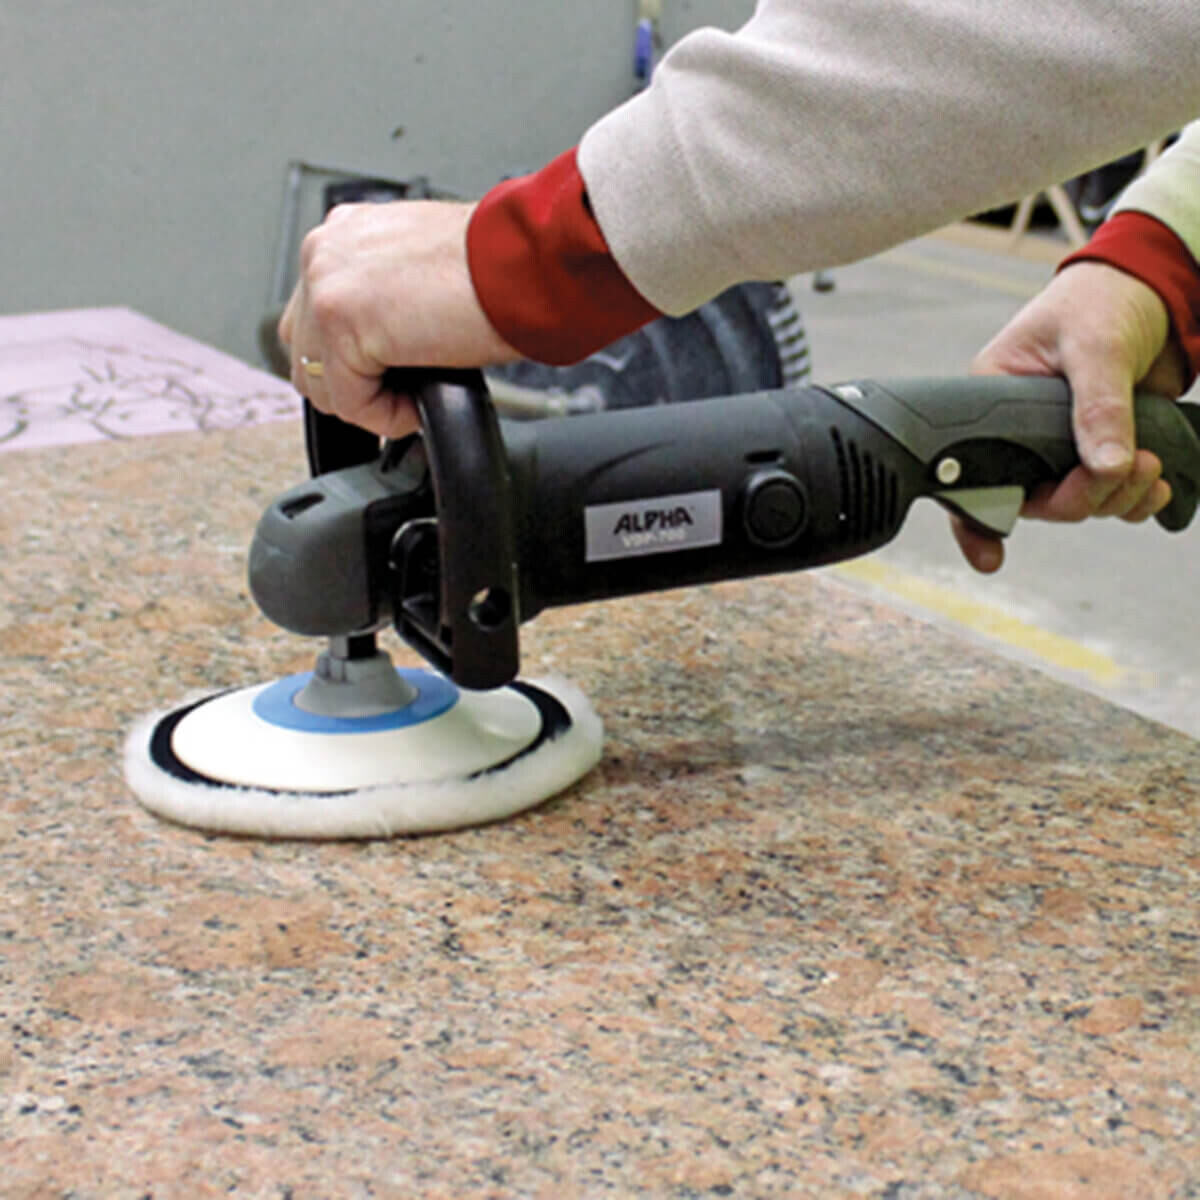 Polishing Engineered Stone with VDP-700 Rotary Polisher